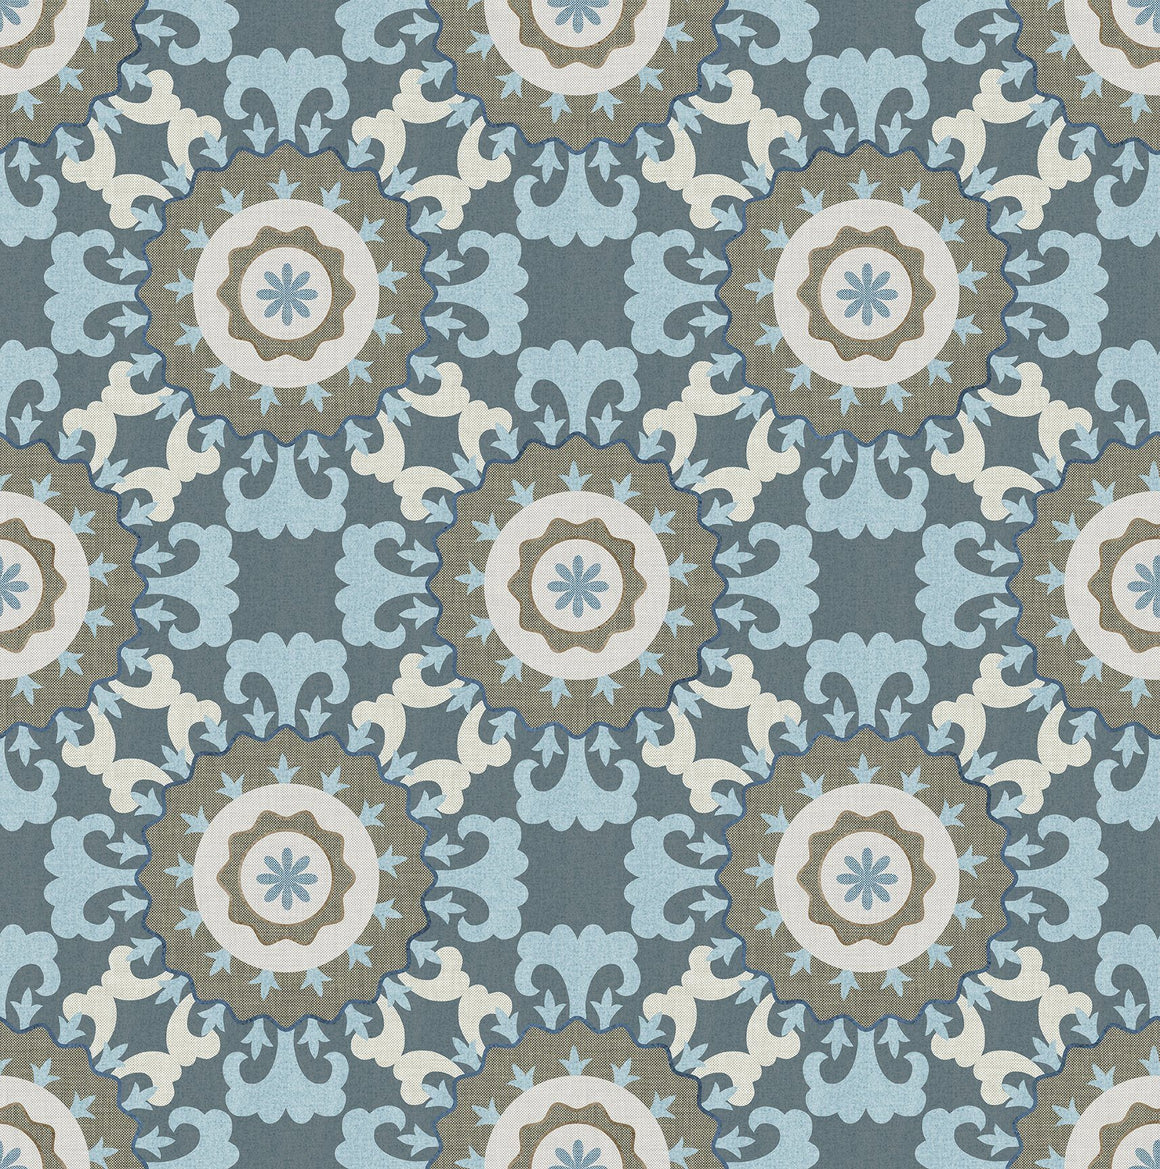 Pattern 469 Wallpaper